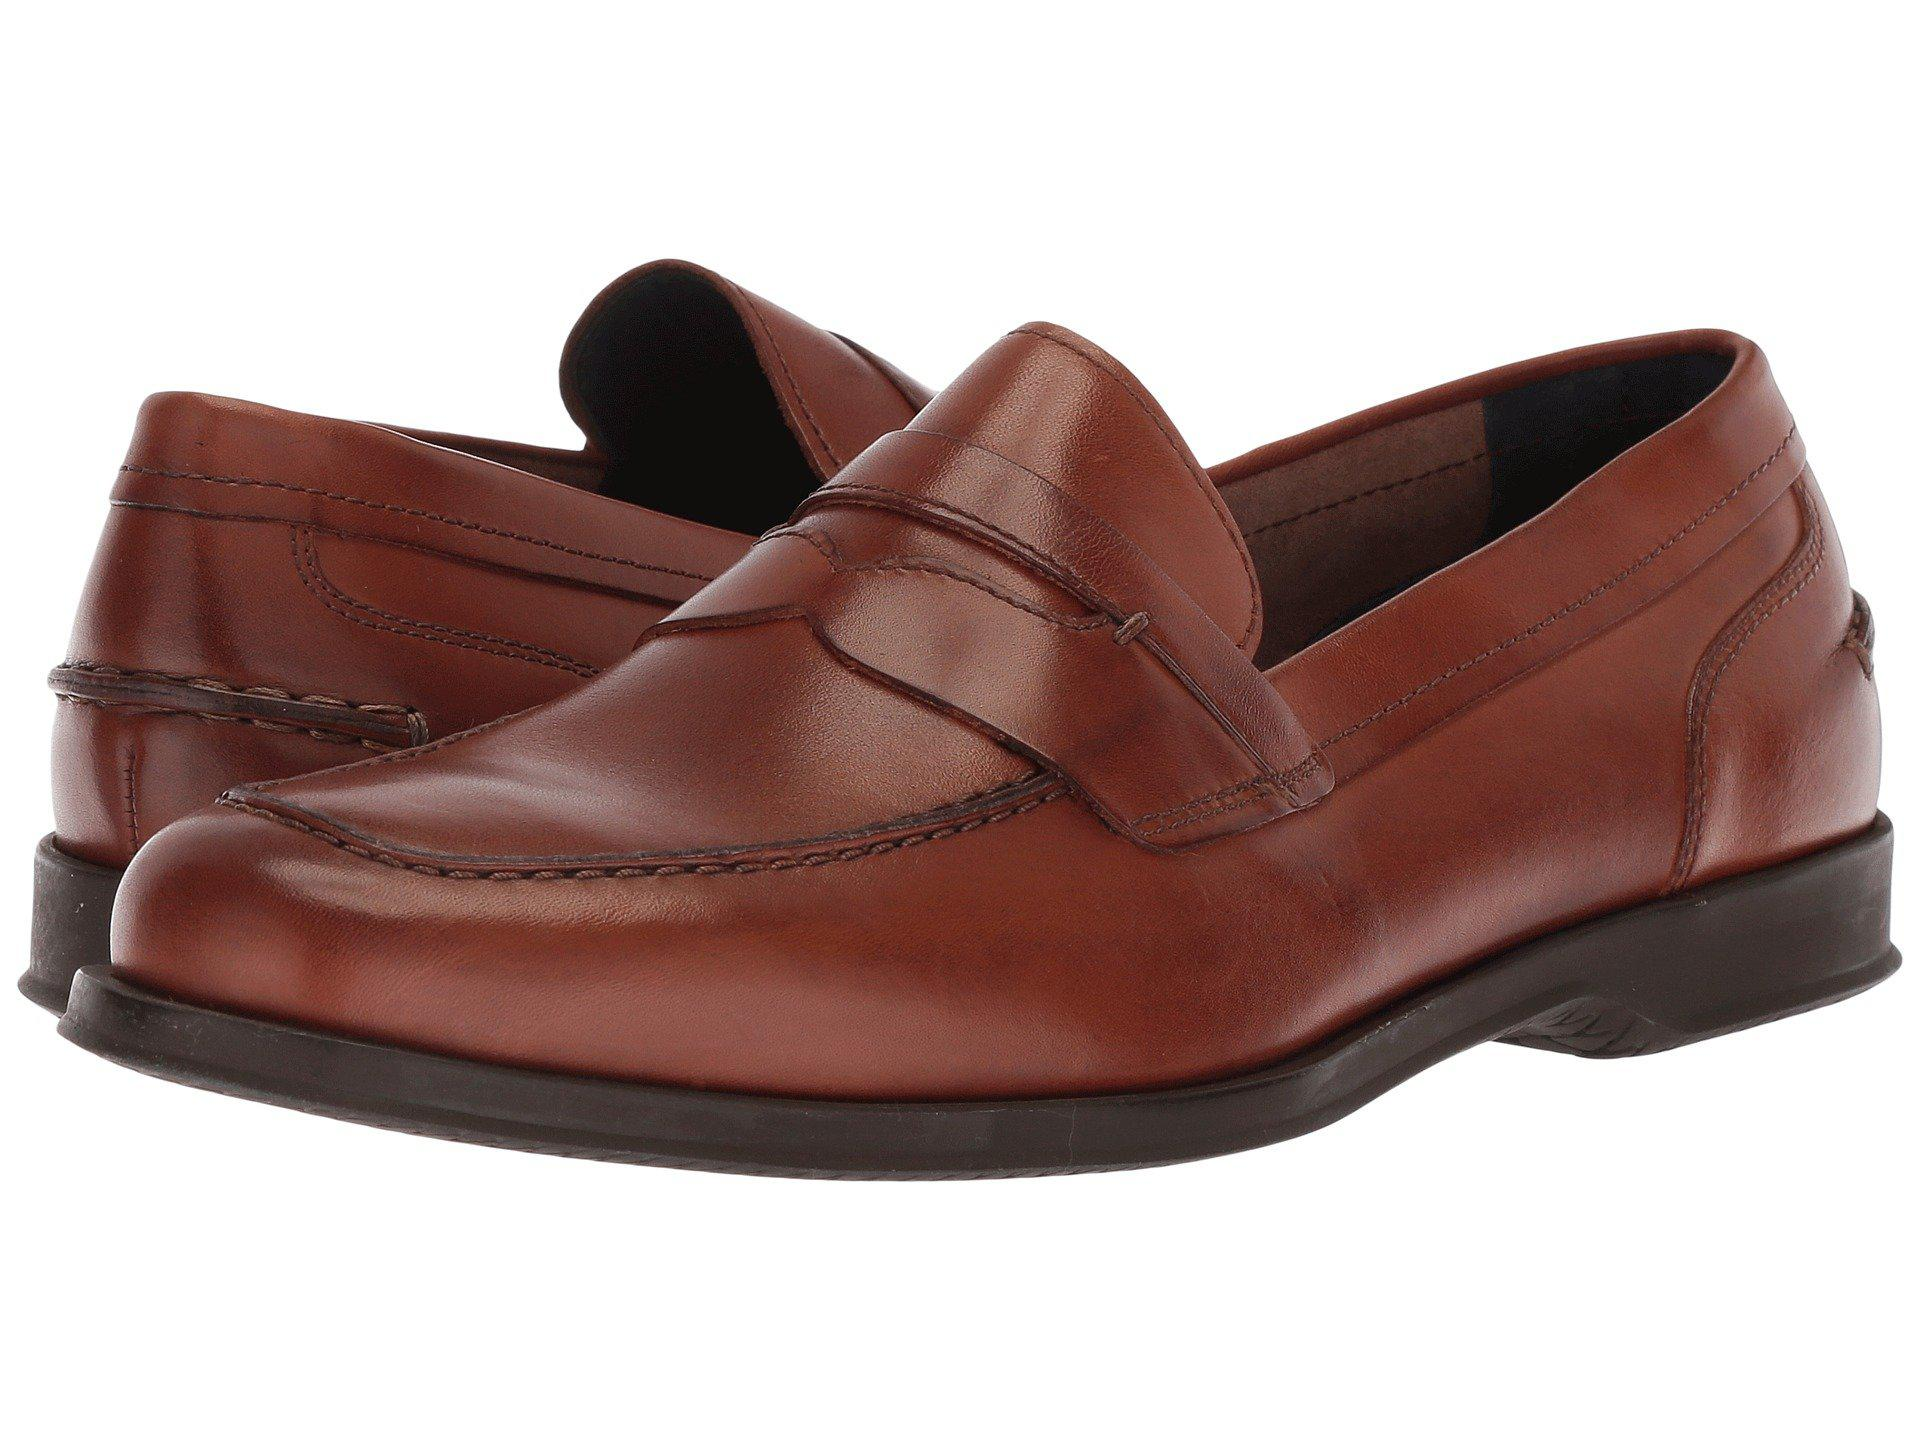 c2b7fd2d2ee Cole Haan - Brown Pinch Sanford Penny Loafer for Men - Lyst. View fullscreen